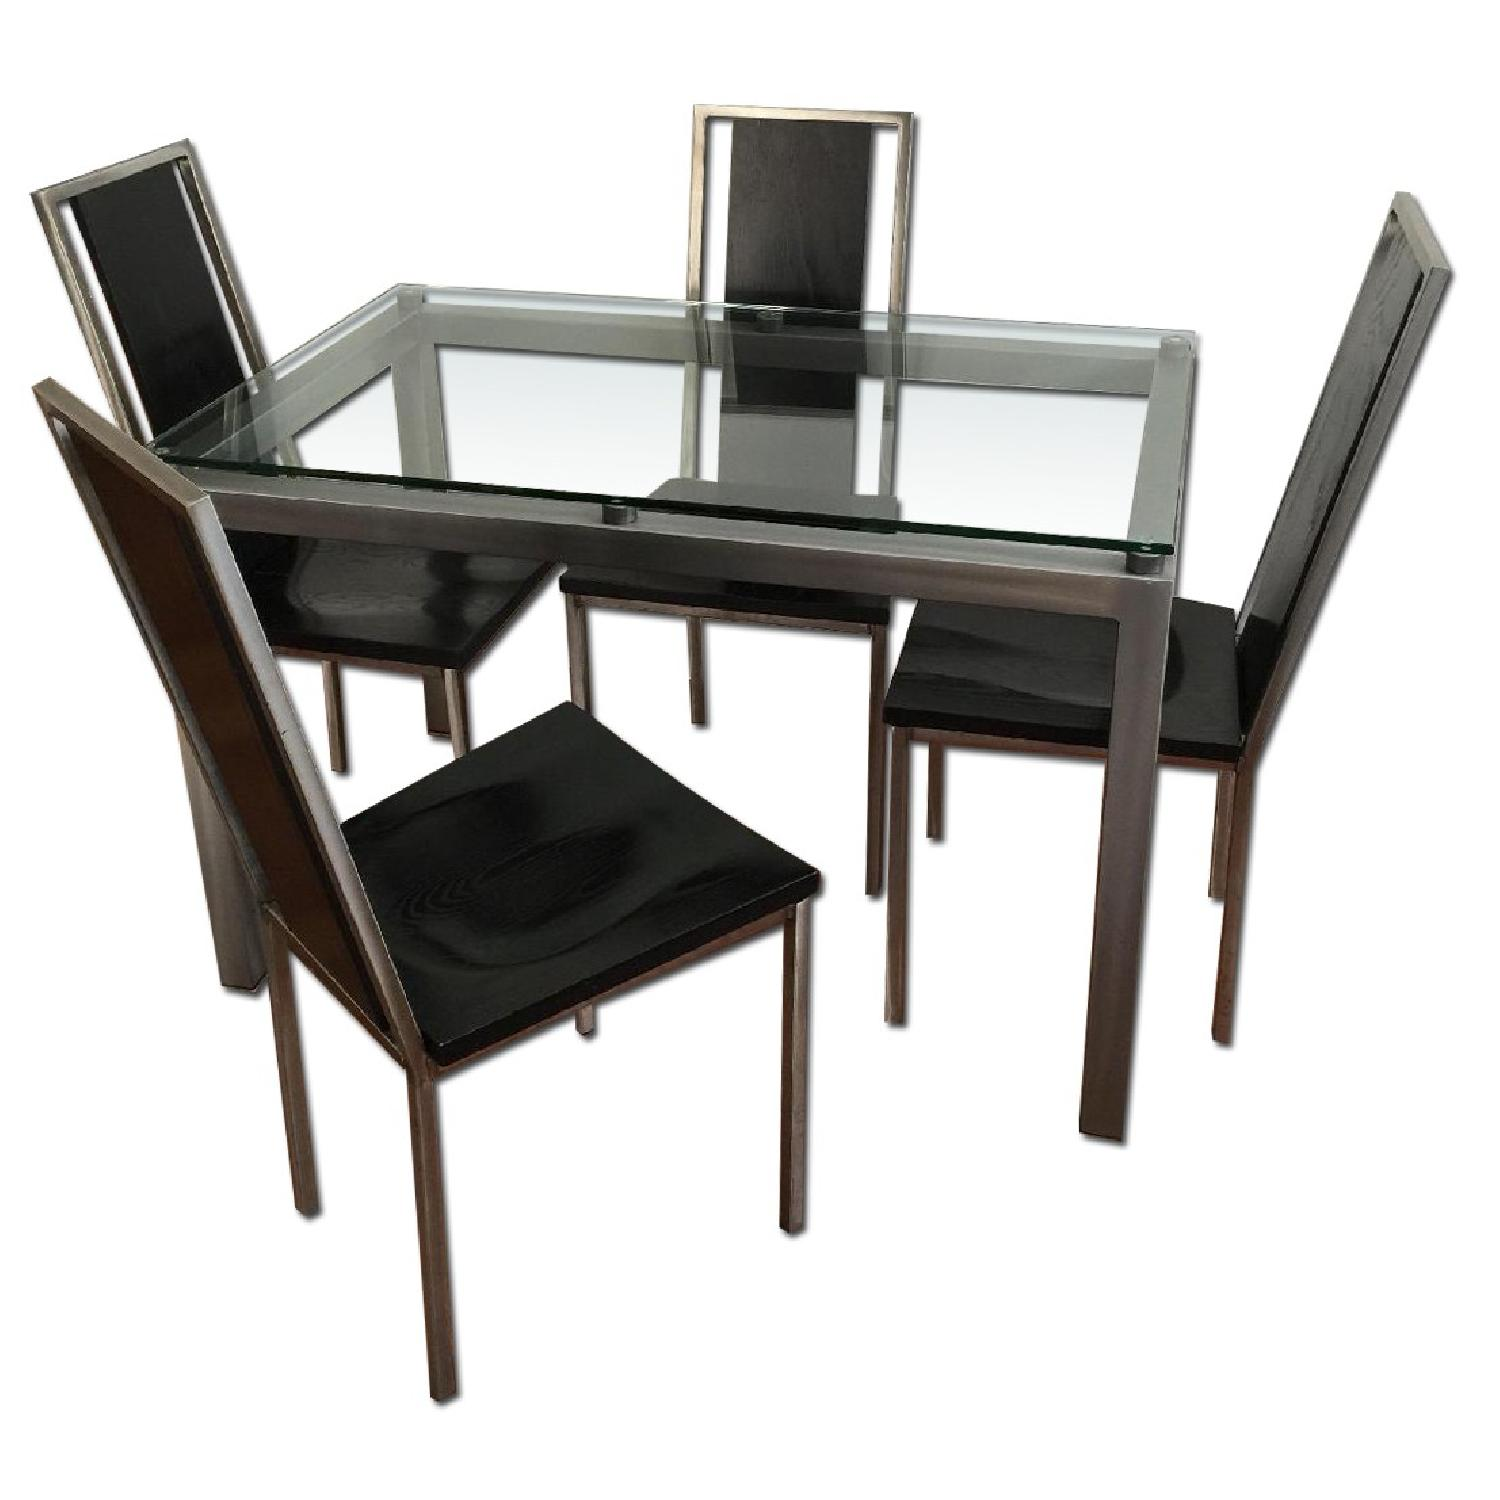 Glass Top/Stainless Base Parsons Table w/ 4 Black Ash Wood Chairs - image-0